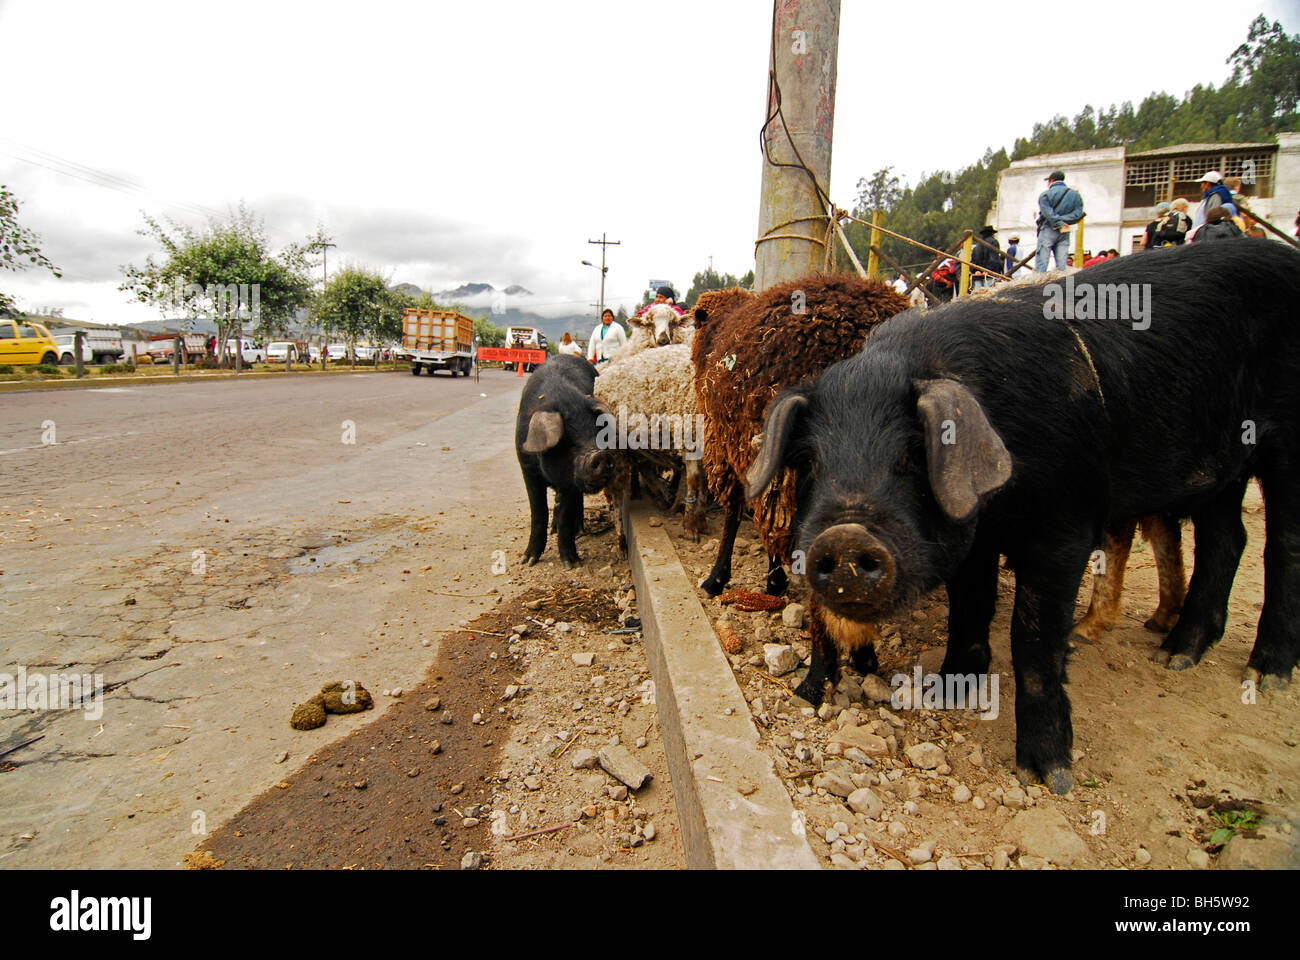 Ecuador, Otavalo, view of a curious black pig standing amid brown sheeps and other pigs tied up to a wooden electrical - Stock Image